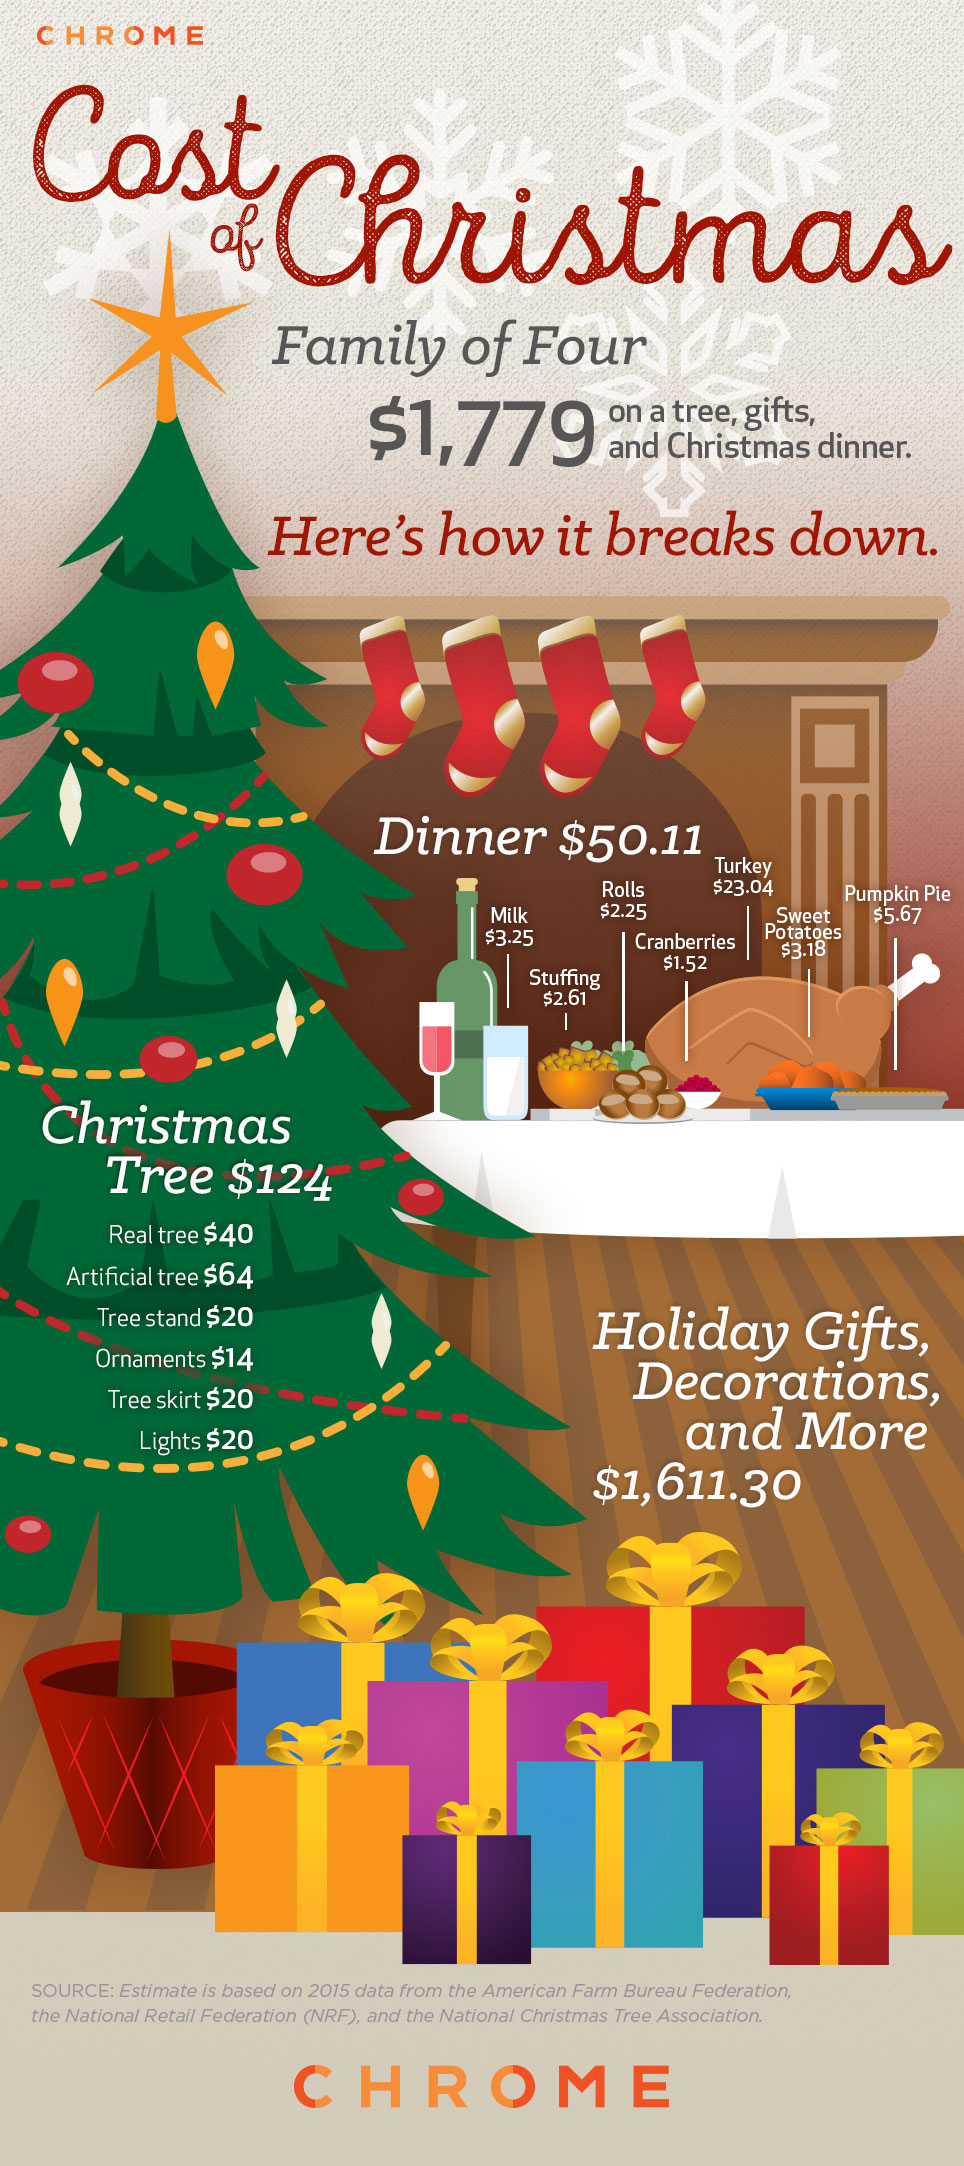 CHROME_Cost of Christmas_infographic_1209.jpg